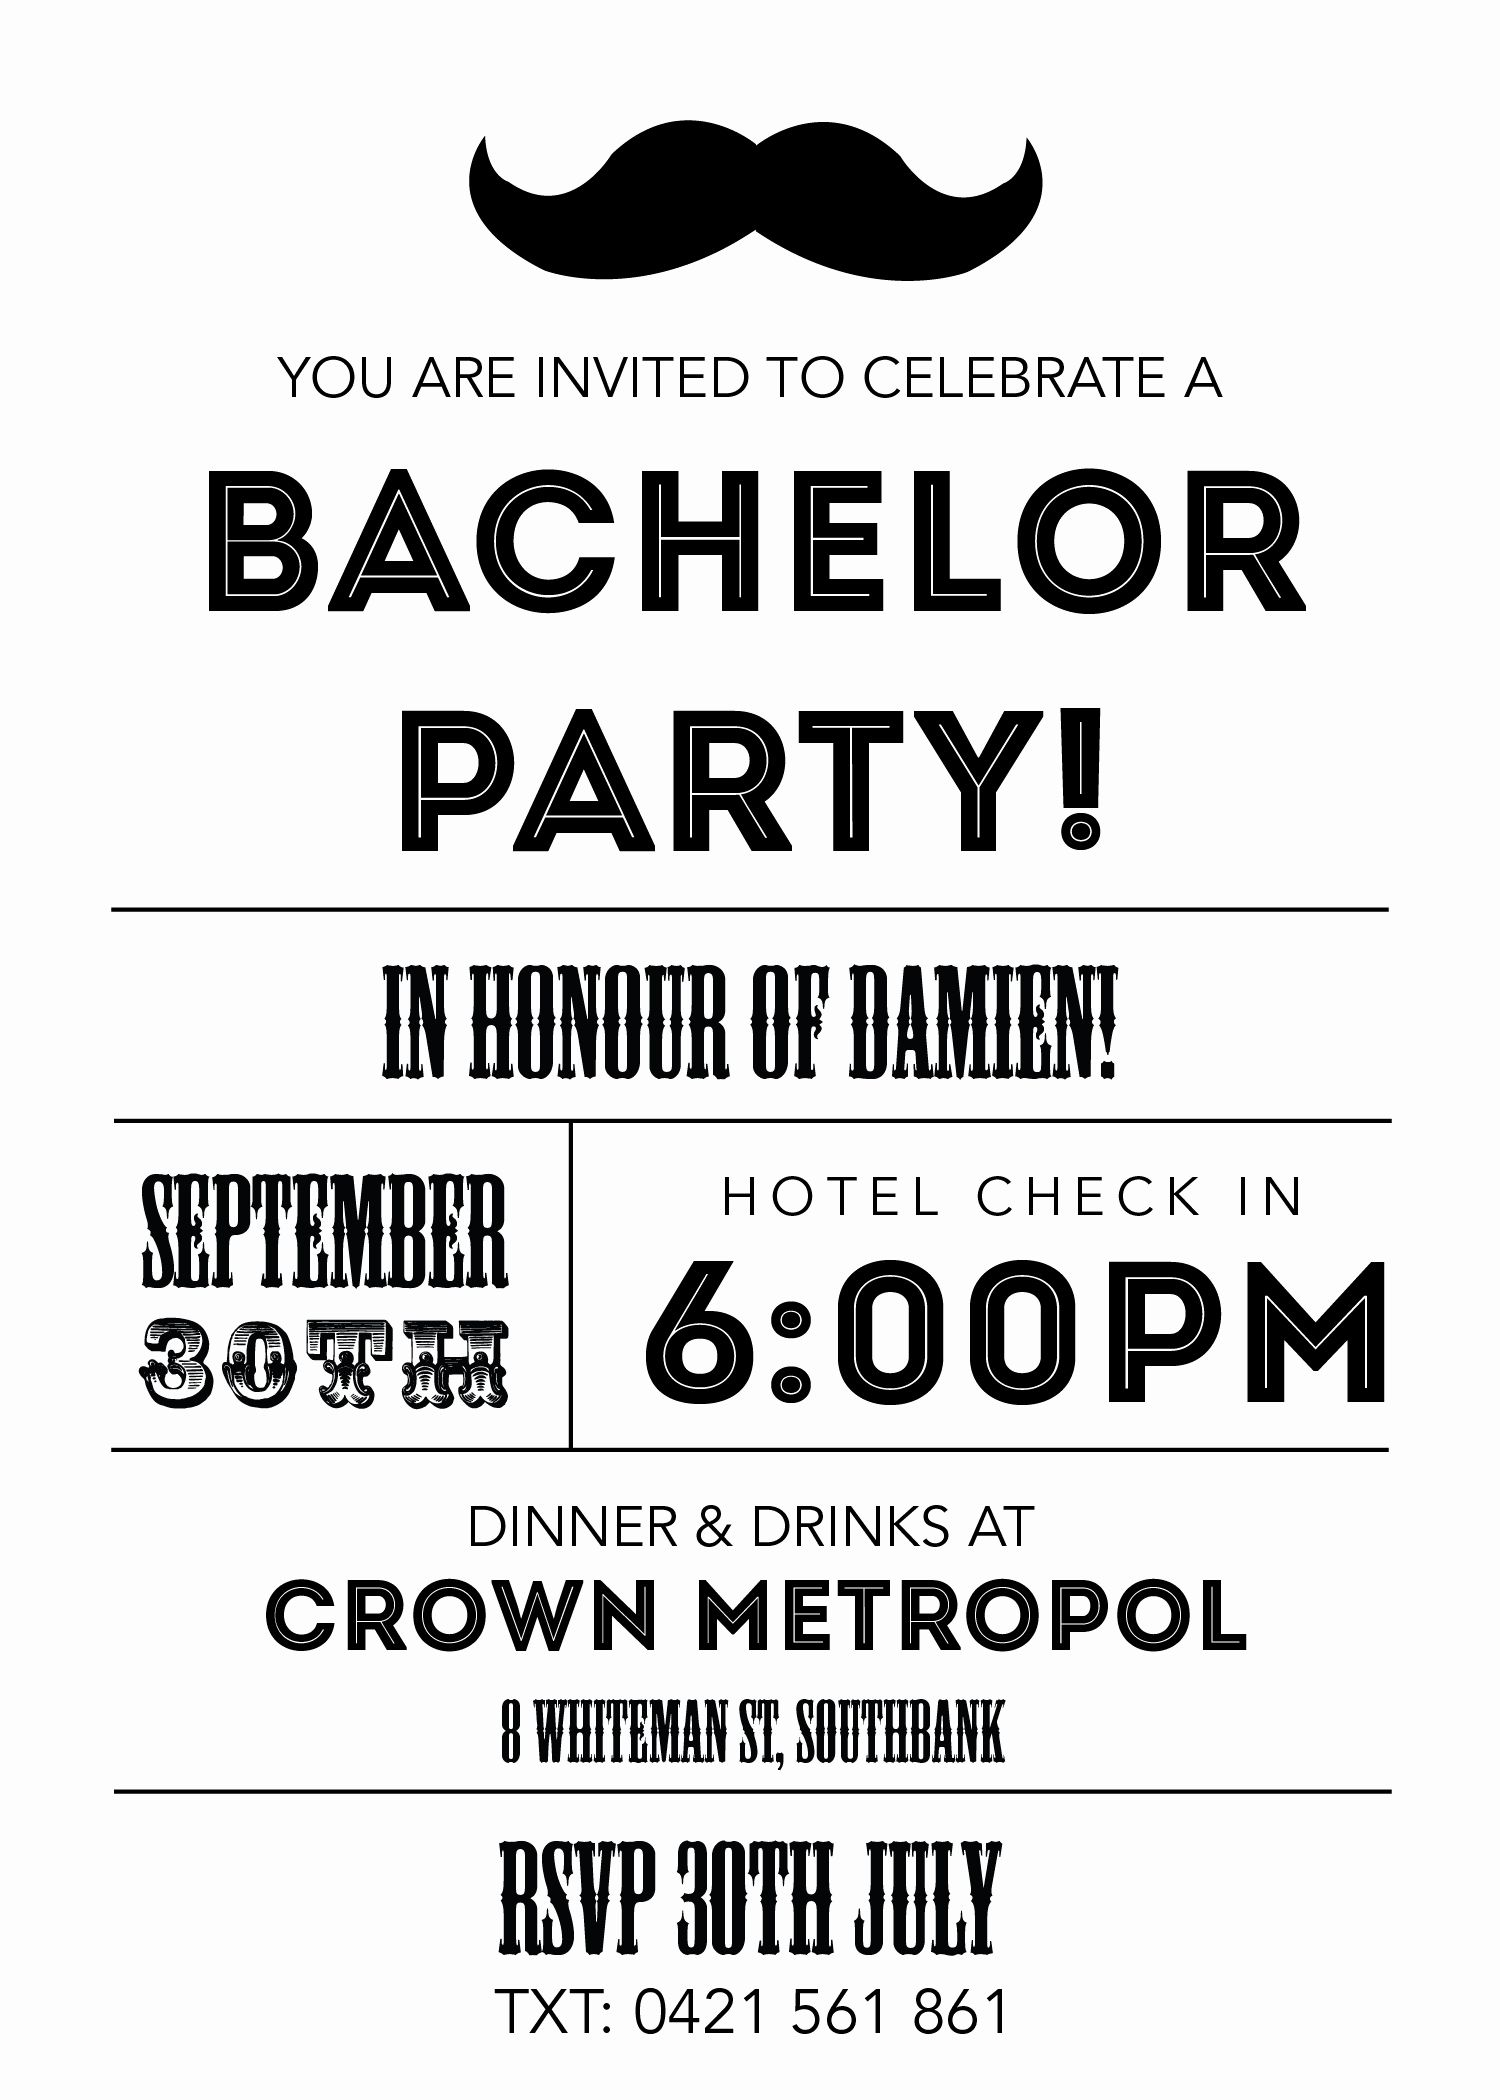 Bachelor Party Invite Template Fresh Bachelor Party Invitations